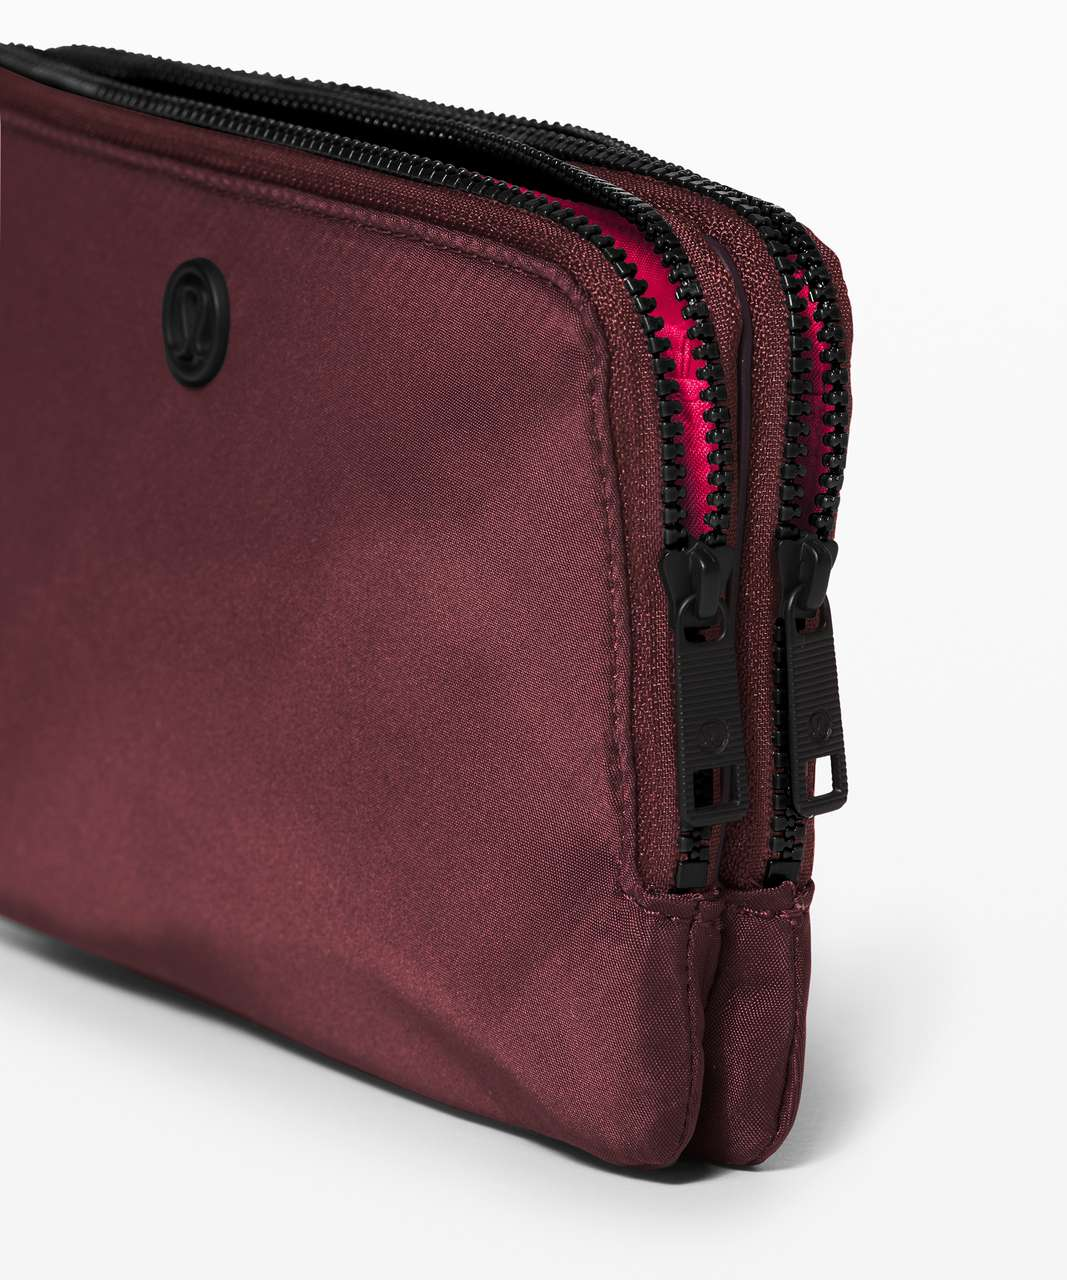 Lululemon Double Up Pouch - Black Cherry